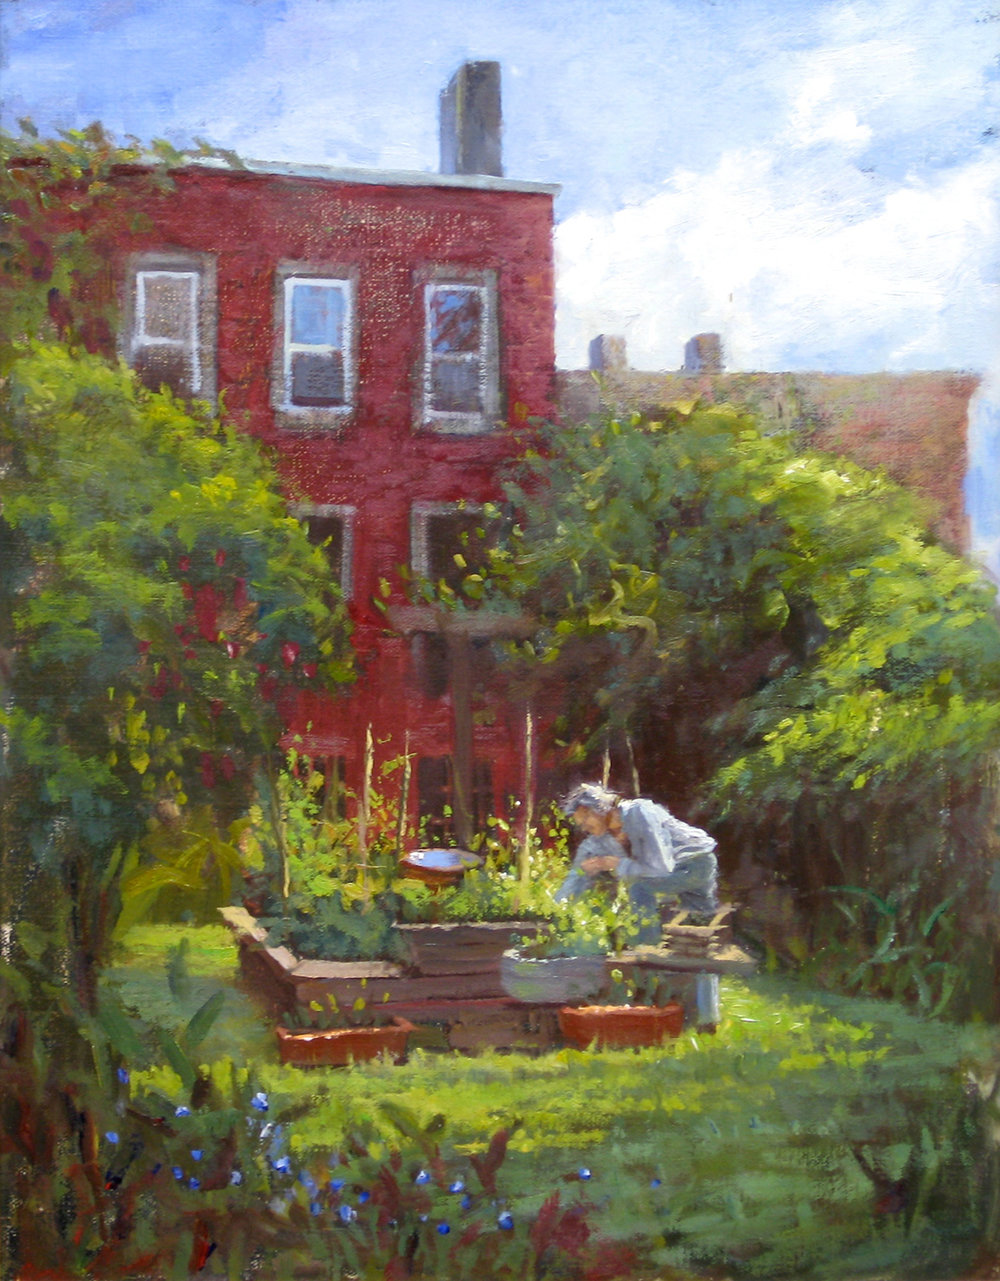 W-NITC-Garden In Bed Sty-Dalrymple-14x18-oil on canvas-2010-SOLD.jpg